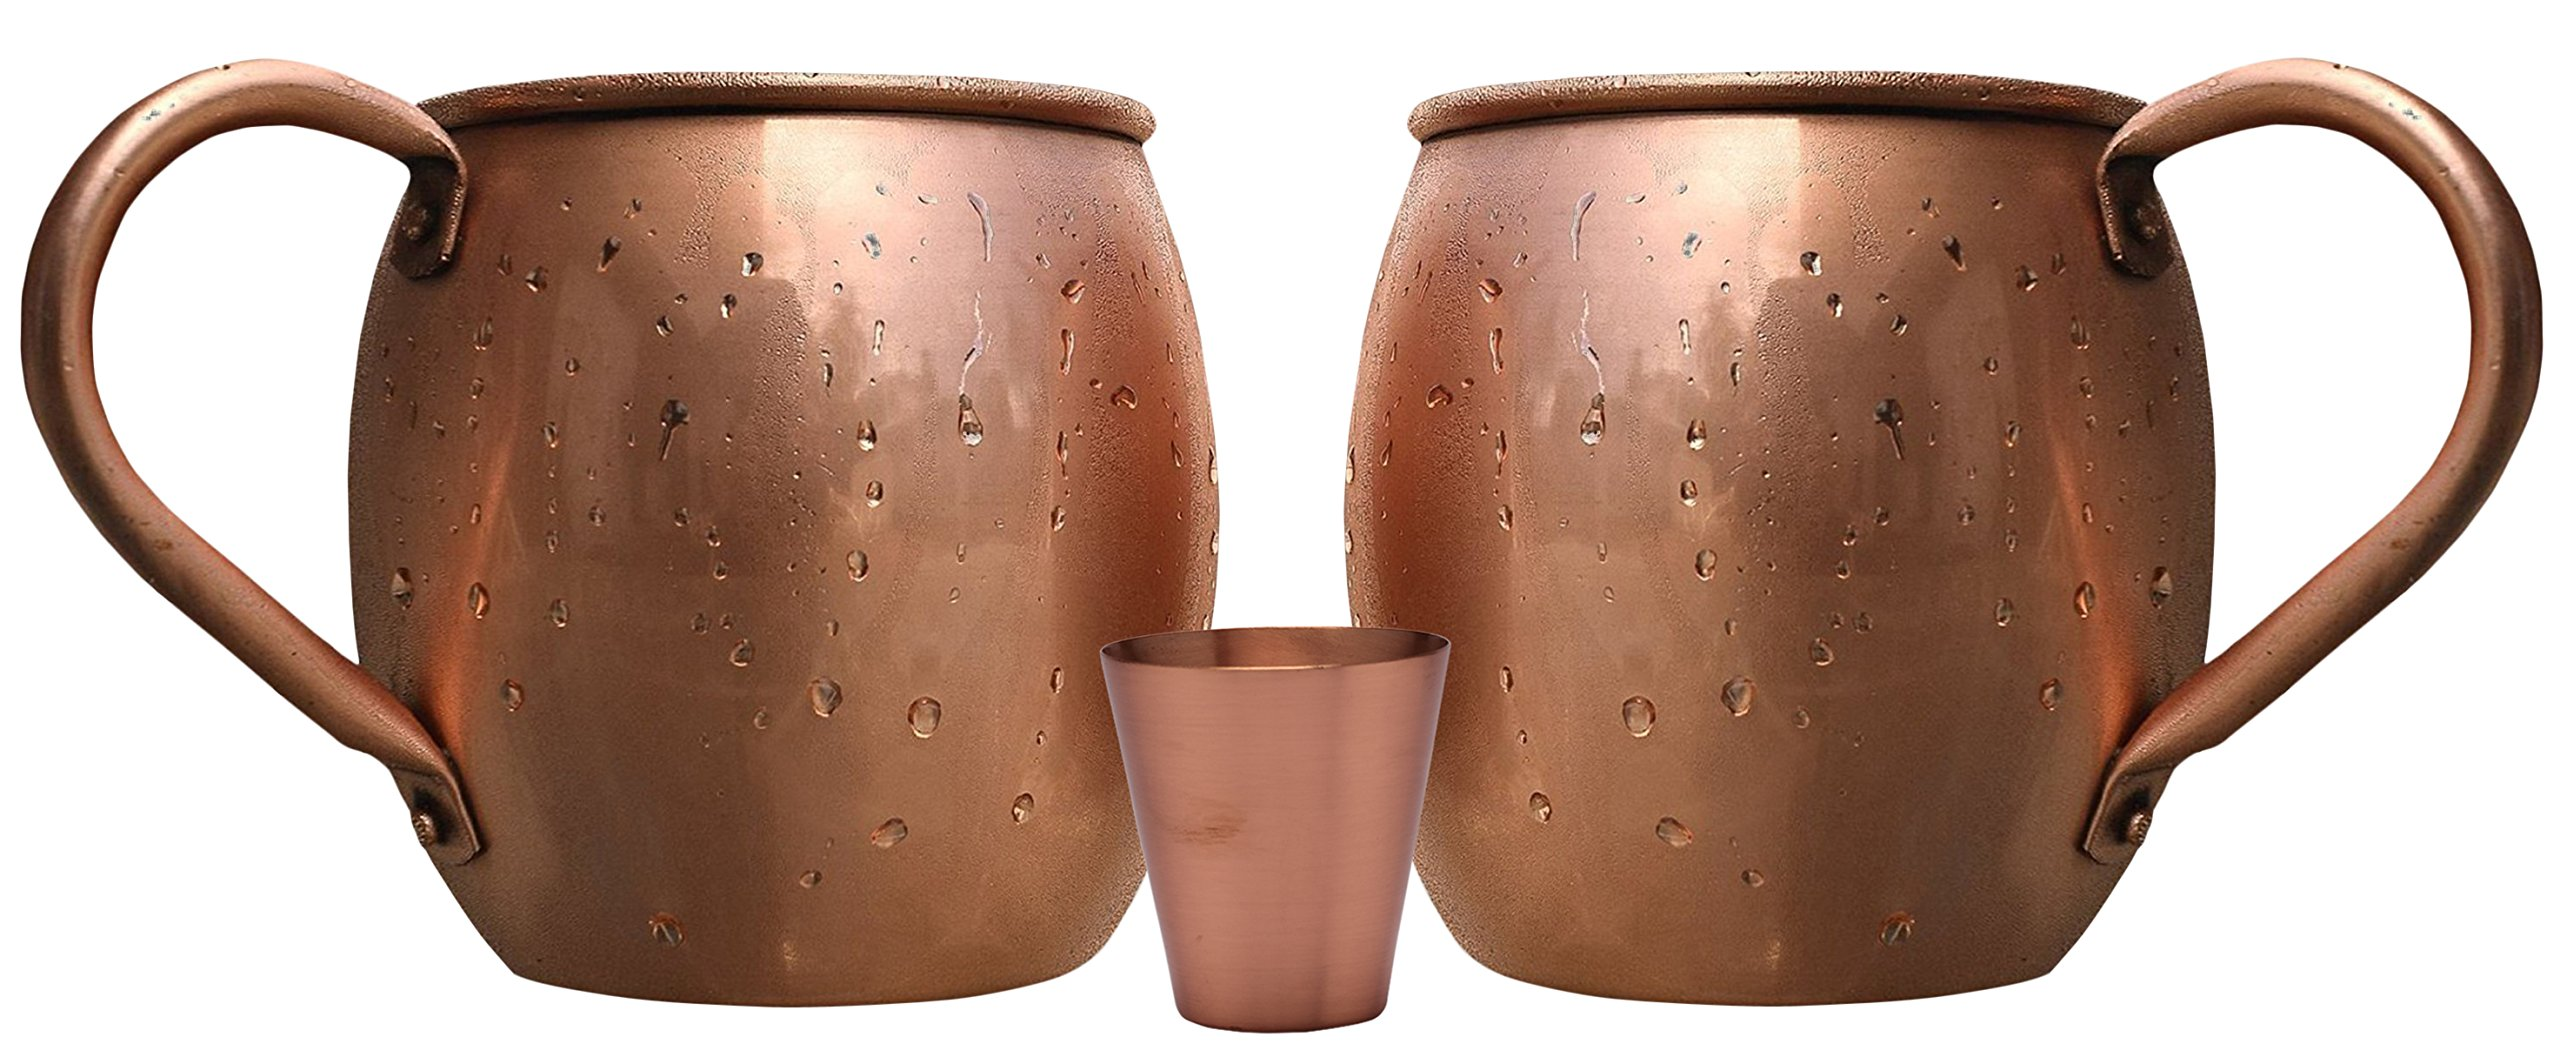 Melange 20 Oz Copper Barrel Mug for Moscow Mules, Set of 16 with Eight Shot Glasses - Heavy Gauge - No lining - includes FREE Recipe card